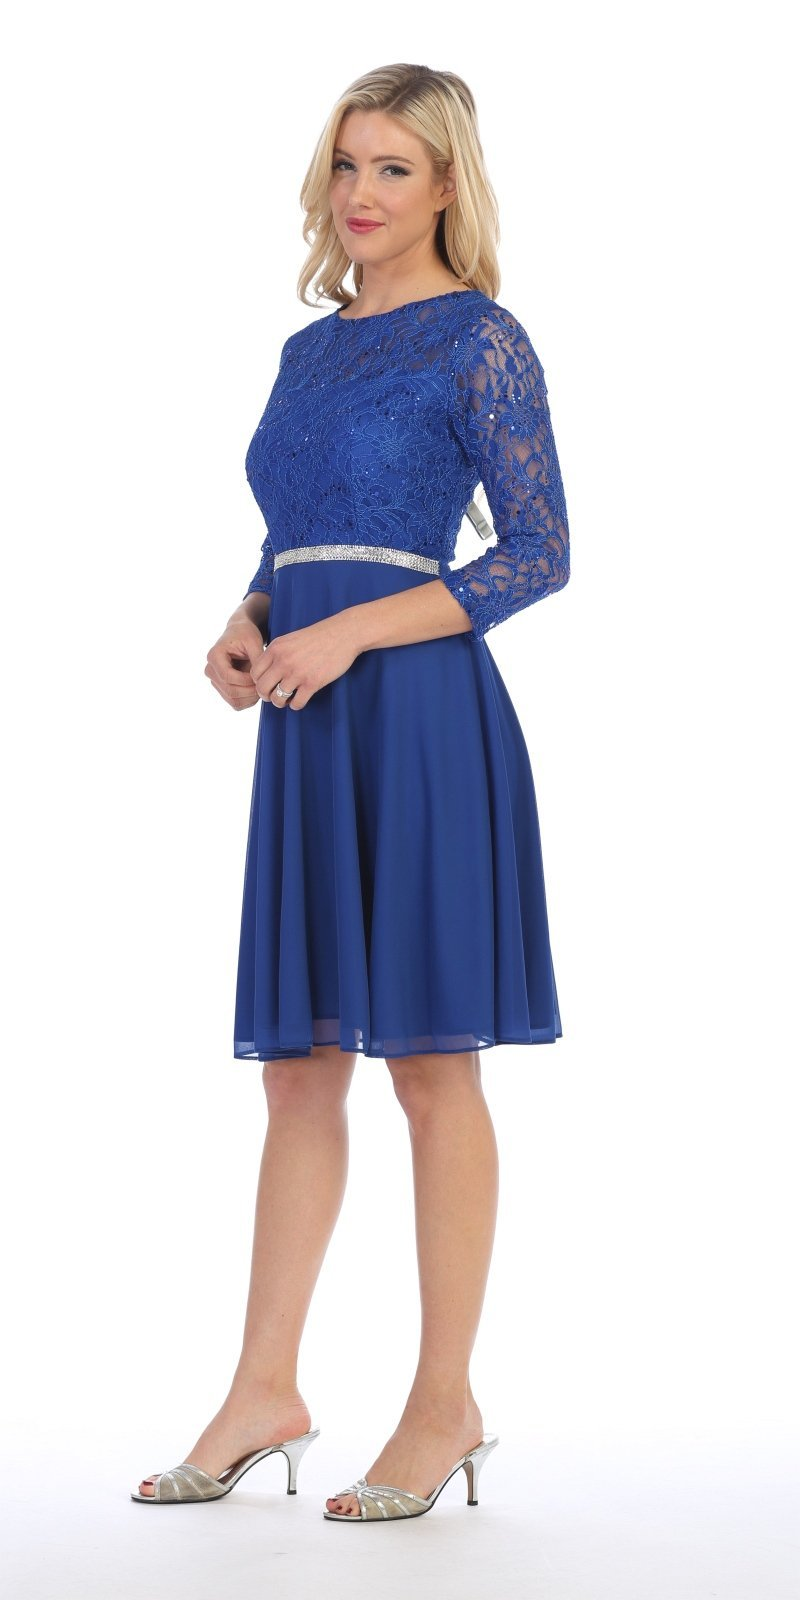 Celavie 6305 Silver Quarter Sleeves Lace Knee-Length Wedding Guest ...